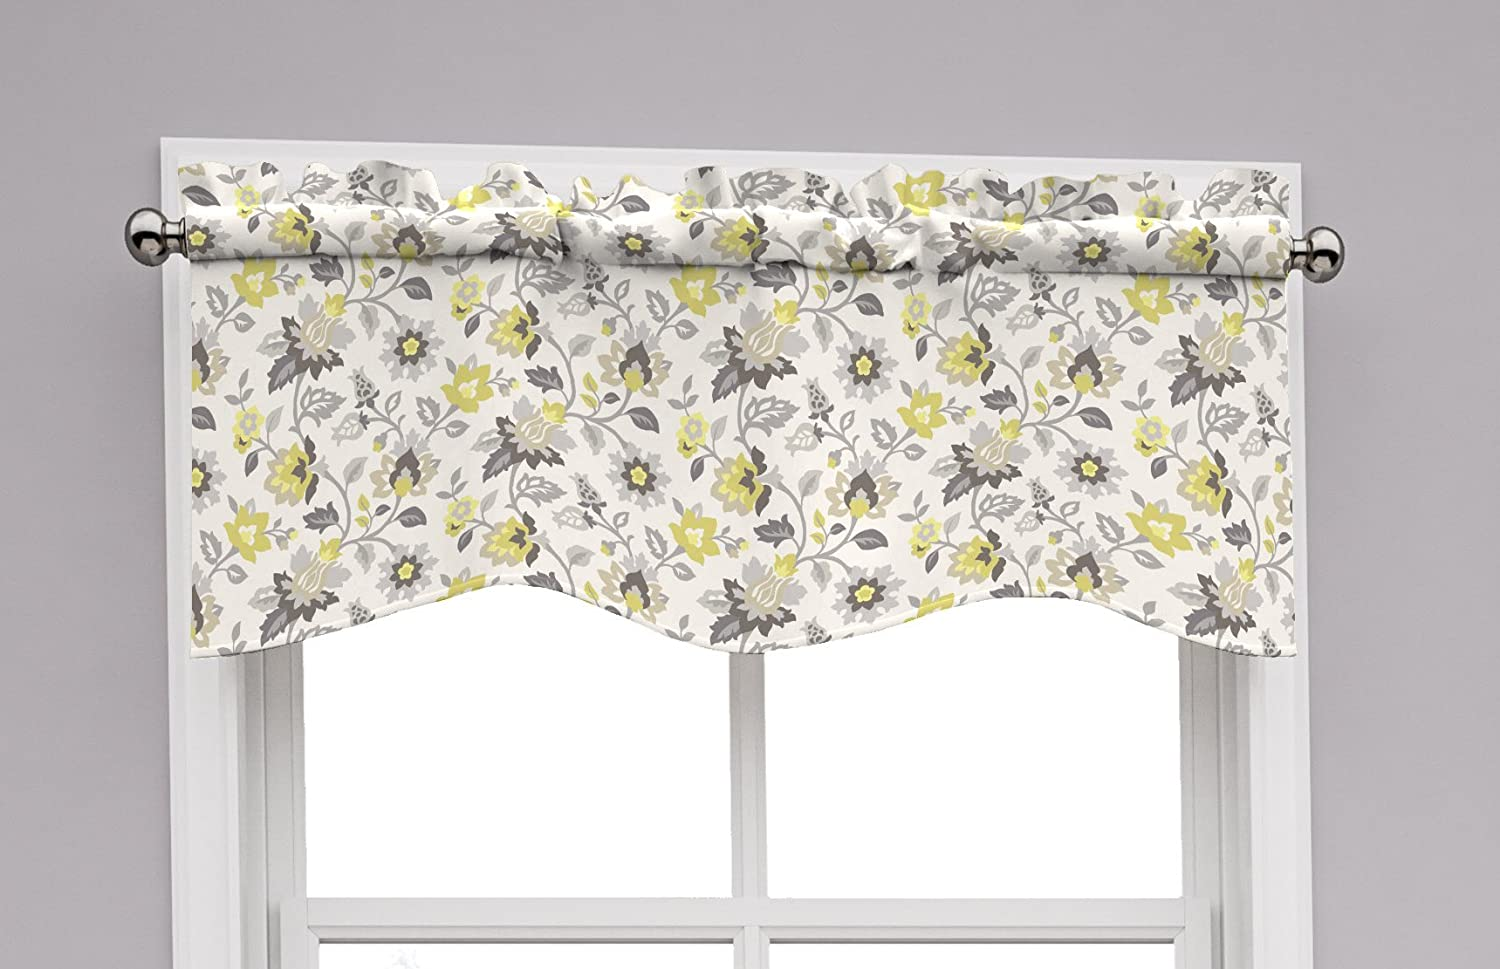 Traditions by Waverly 14968052016SLG Set In Spring 52-Inch by 16-Inch Wave Window Valance, Sterling